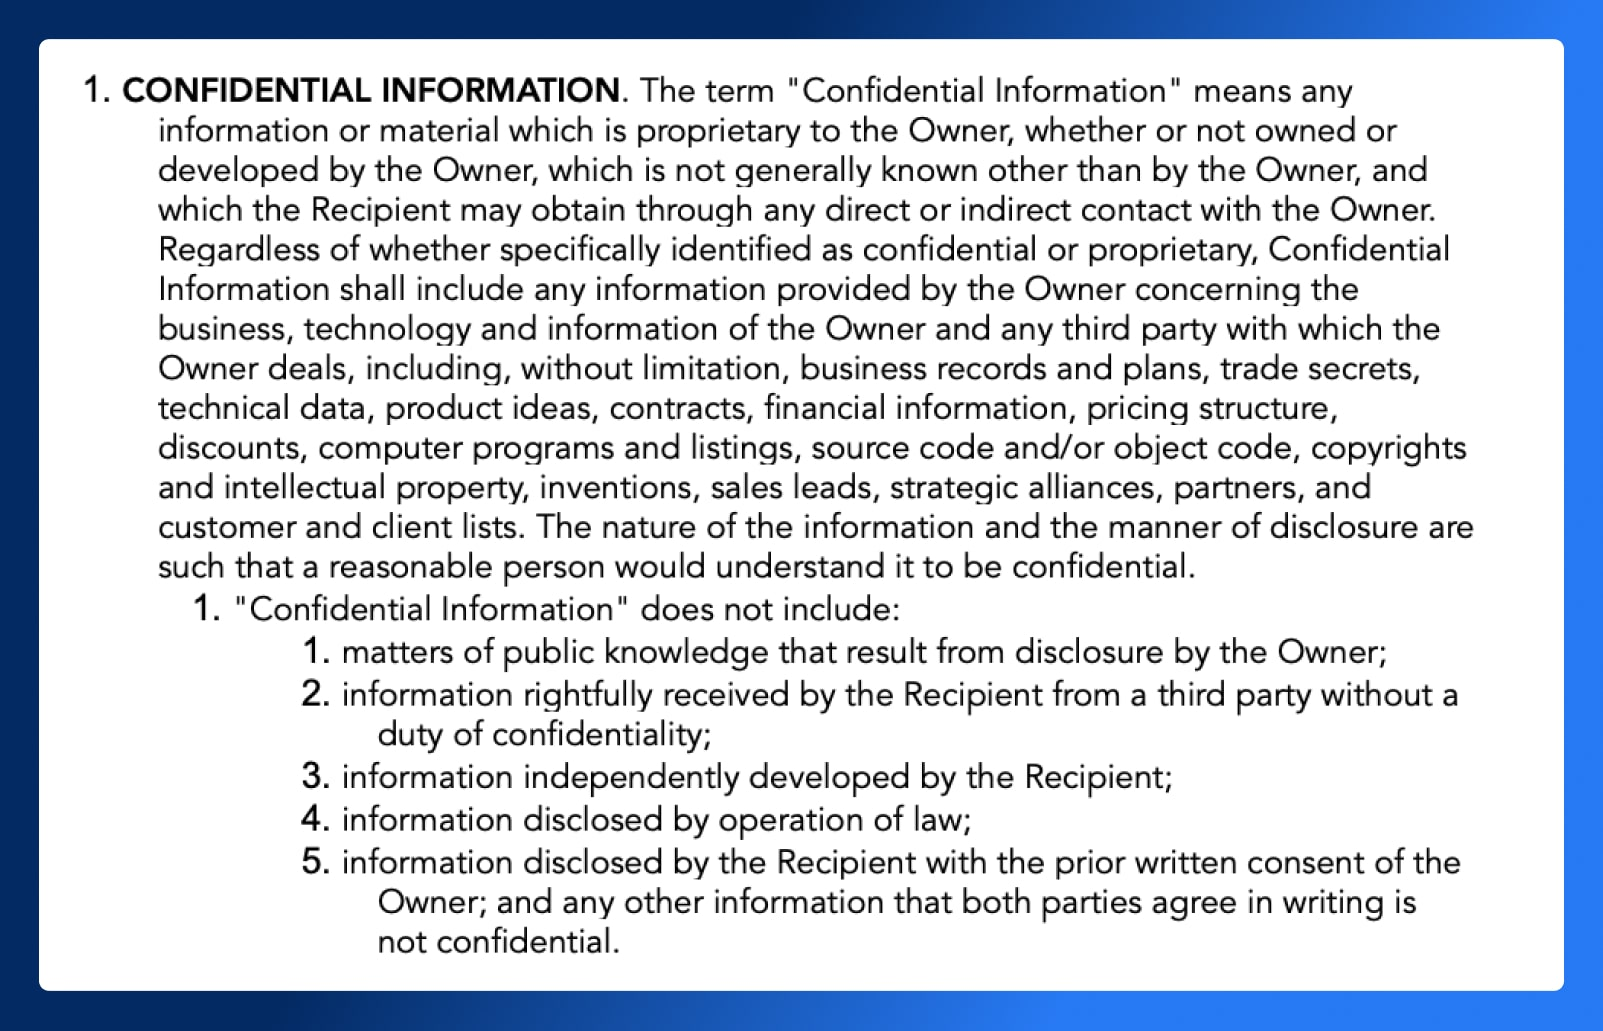 Non Disclosure Agreement - Confidential Information - Wrapbook